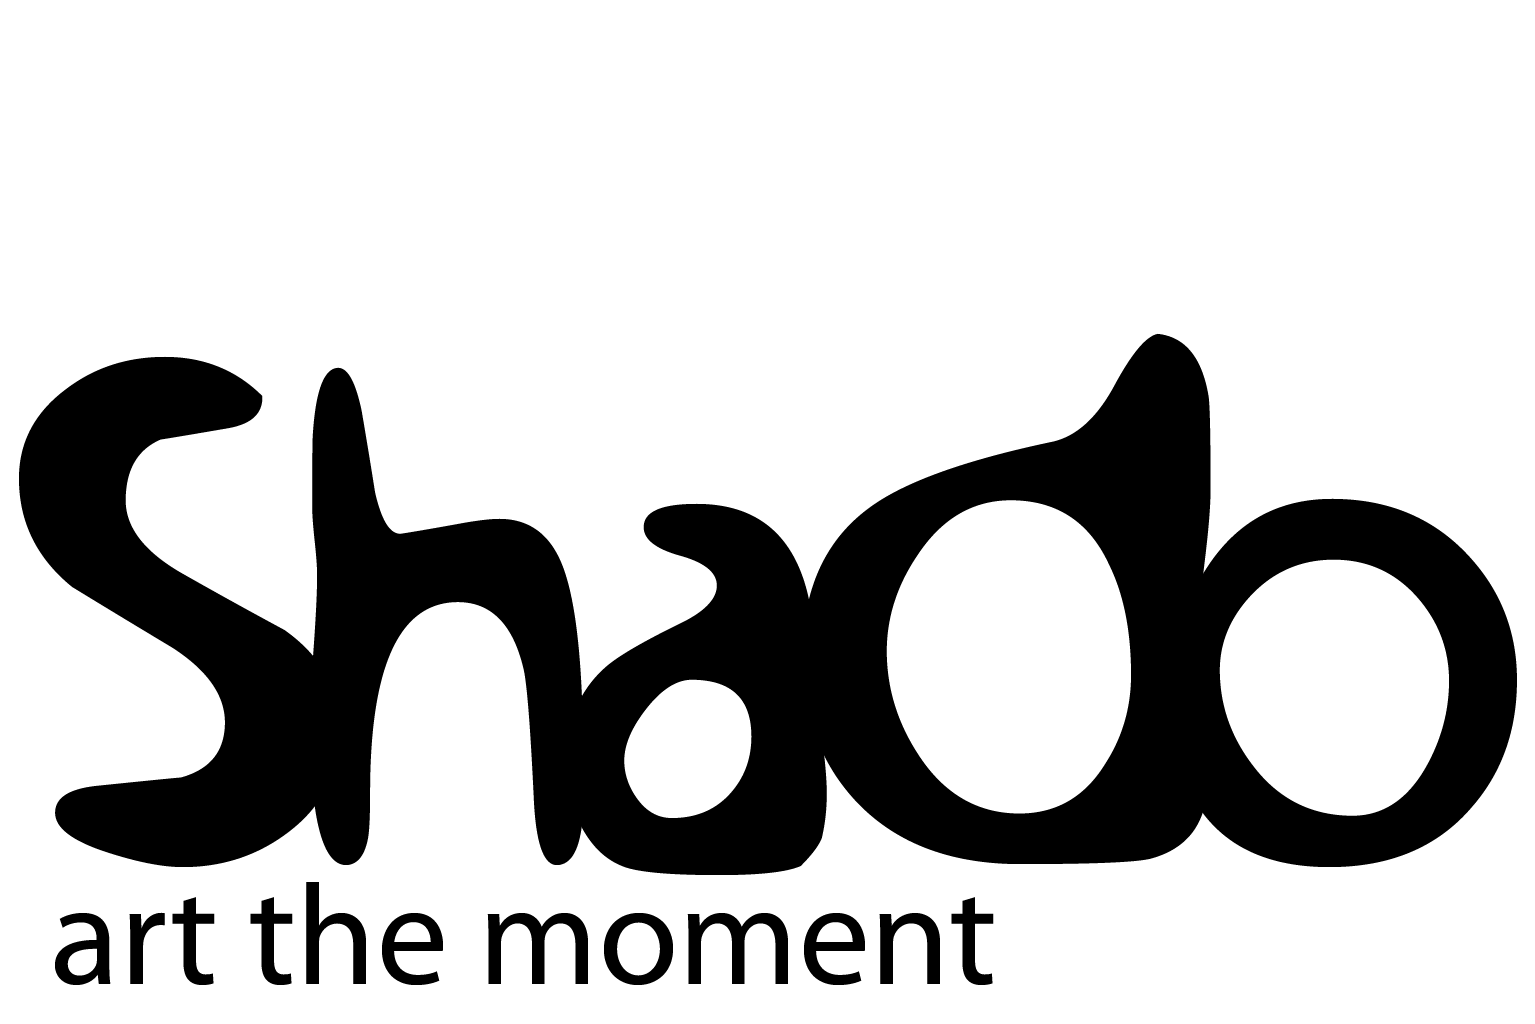 Image result for Shado art logo